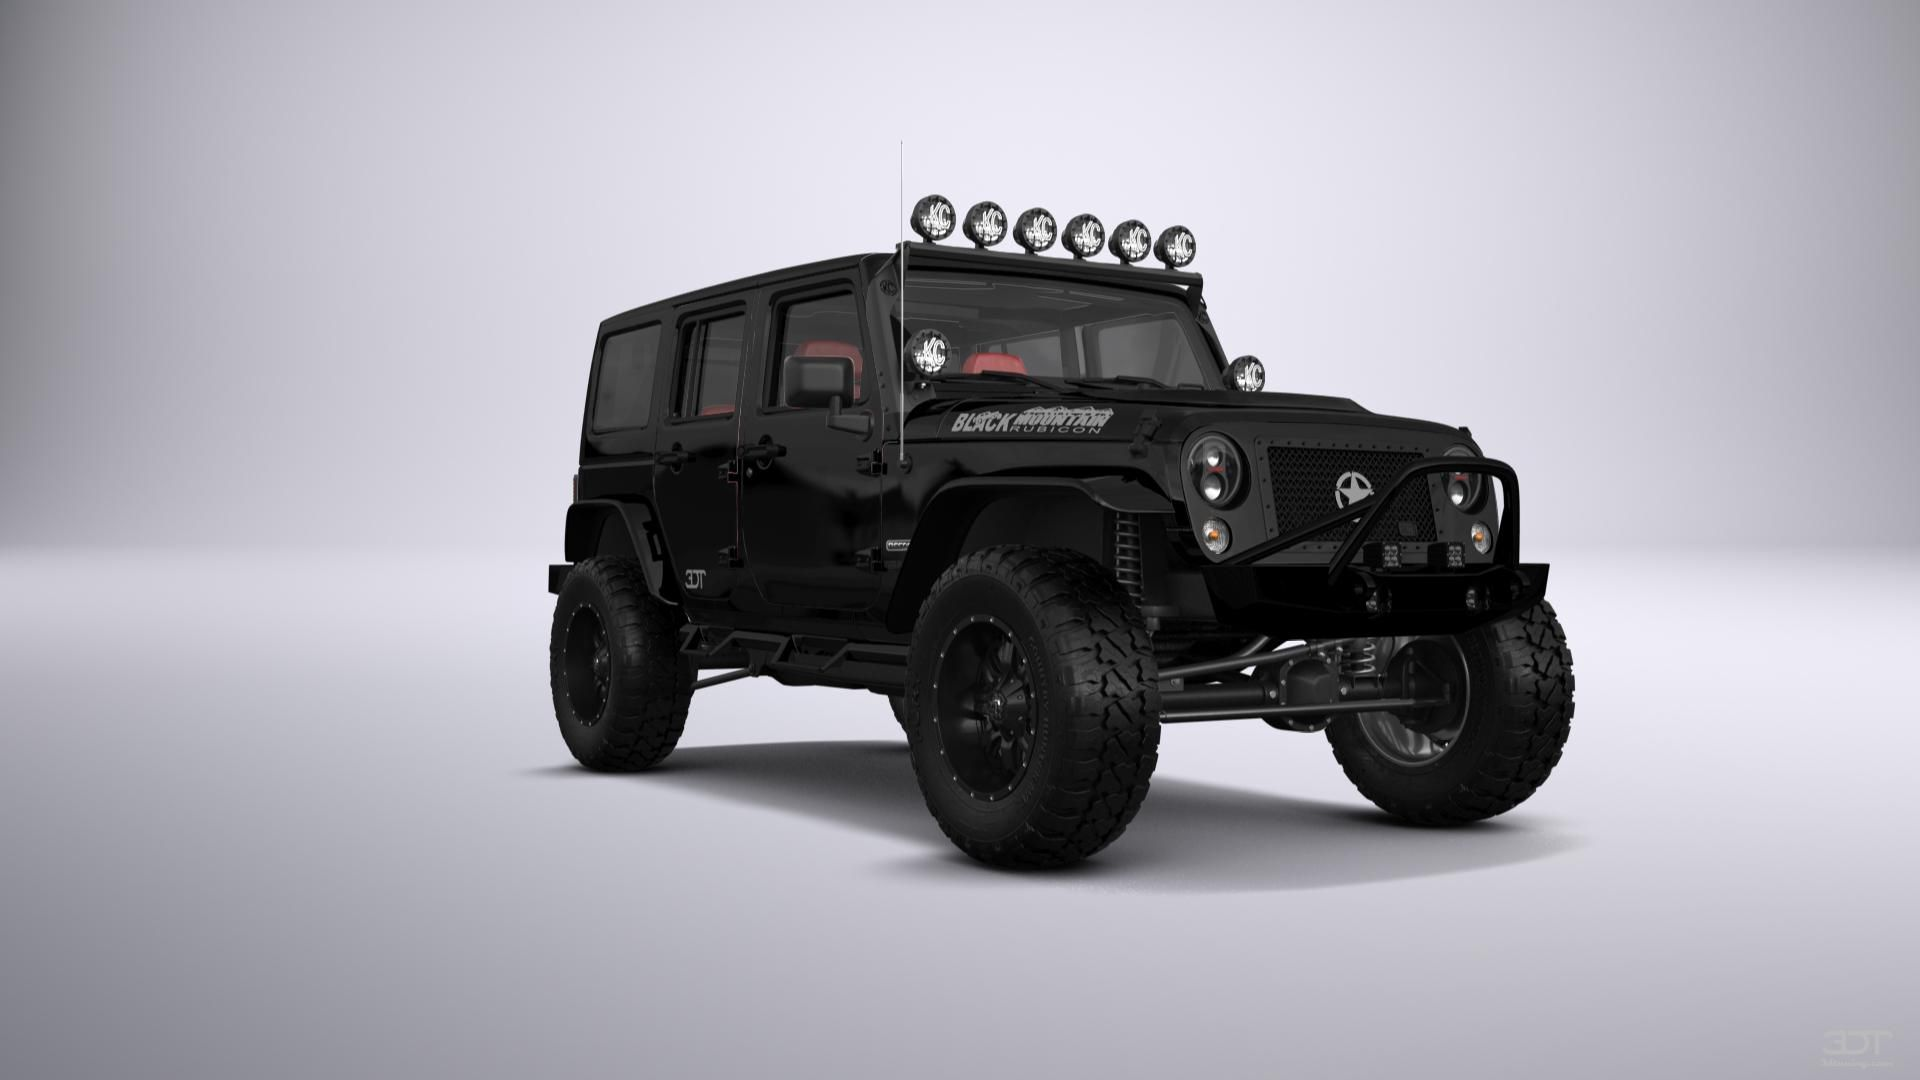 Checkout My Tuning Jeep Wranglerunlimitedrubiconrecon 2017 At 3dtuning 3dtuning Tuning Jeep Wrangler Unlimited Jeep Black Jeeps